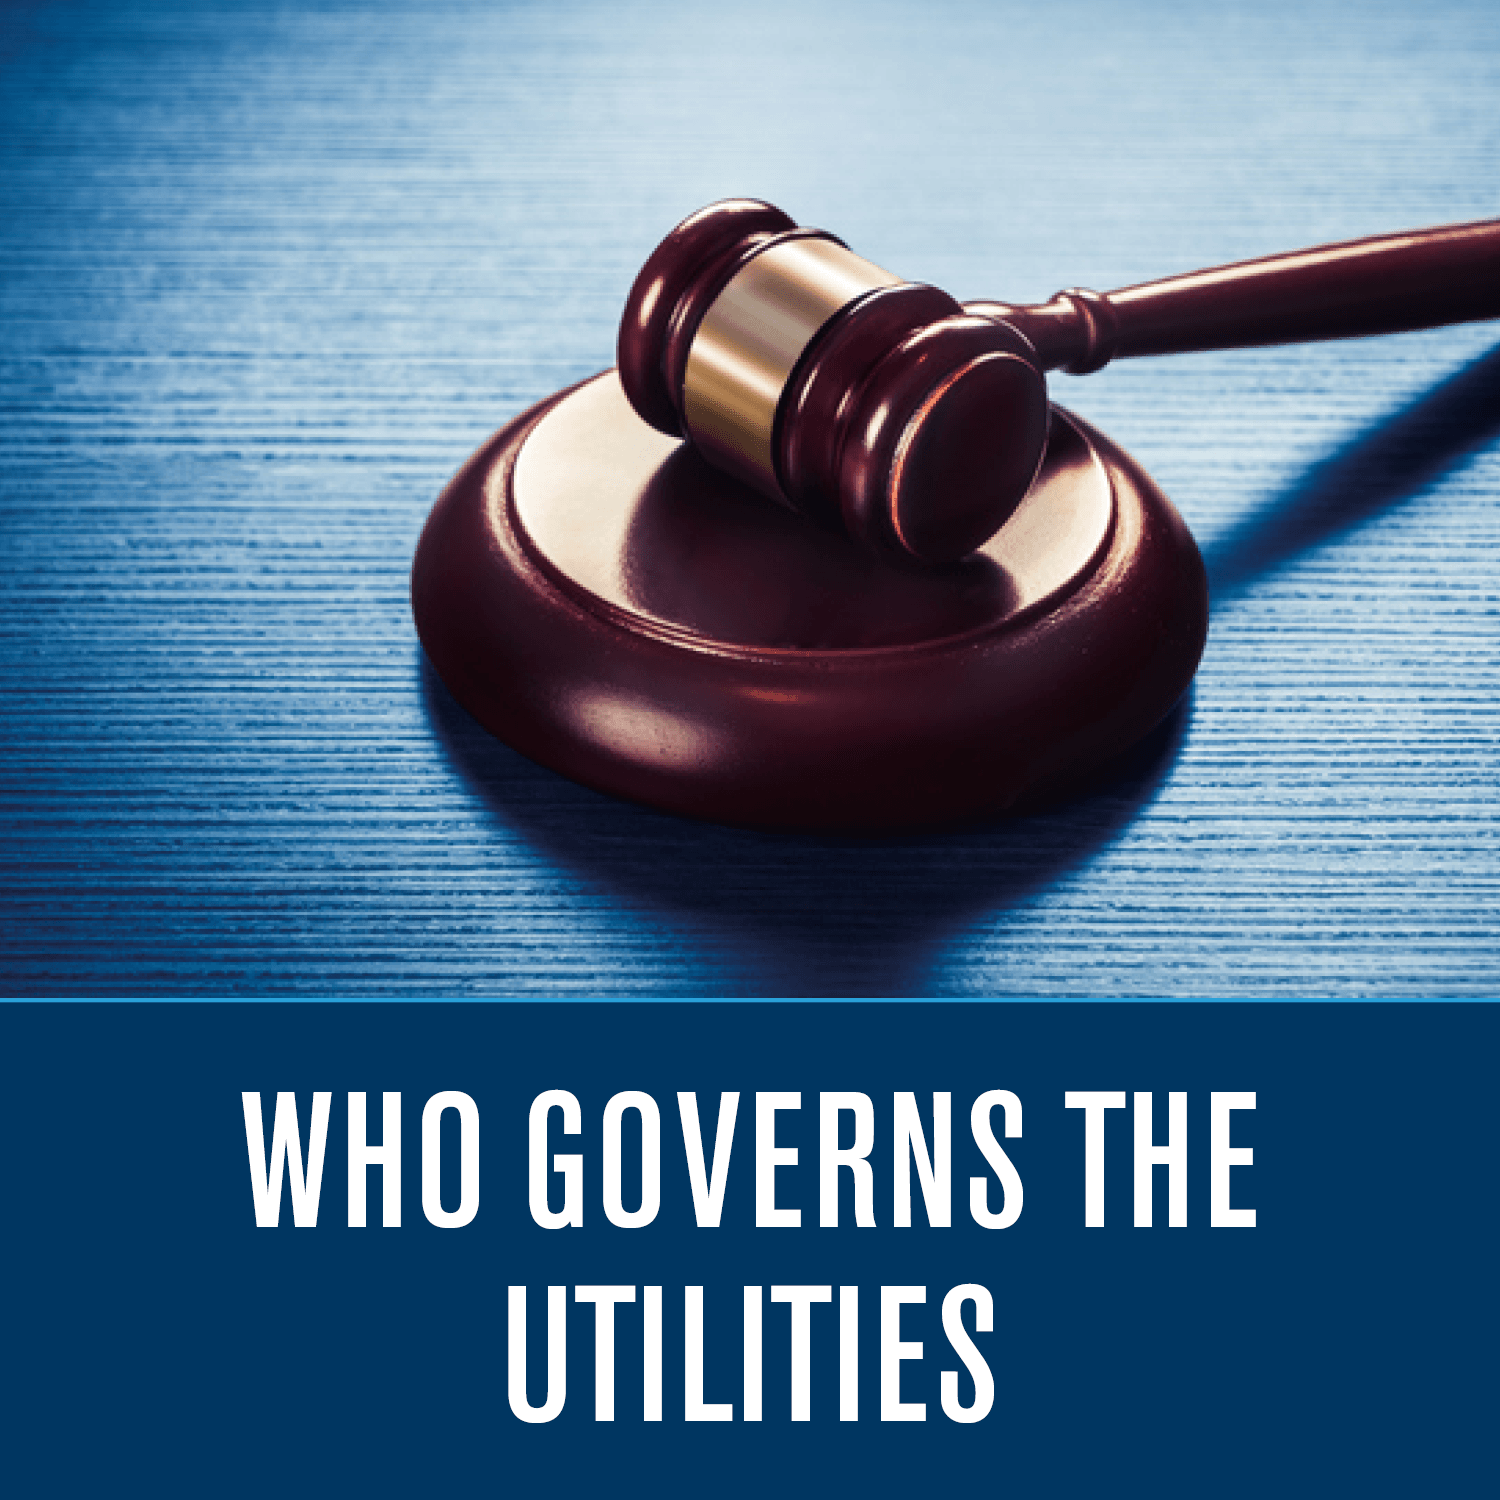 Who governs the Utilities